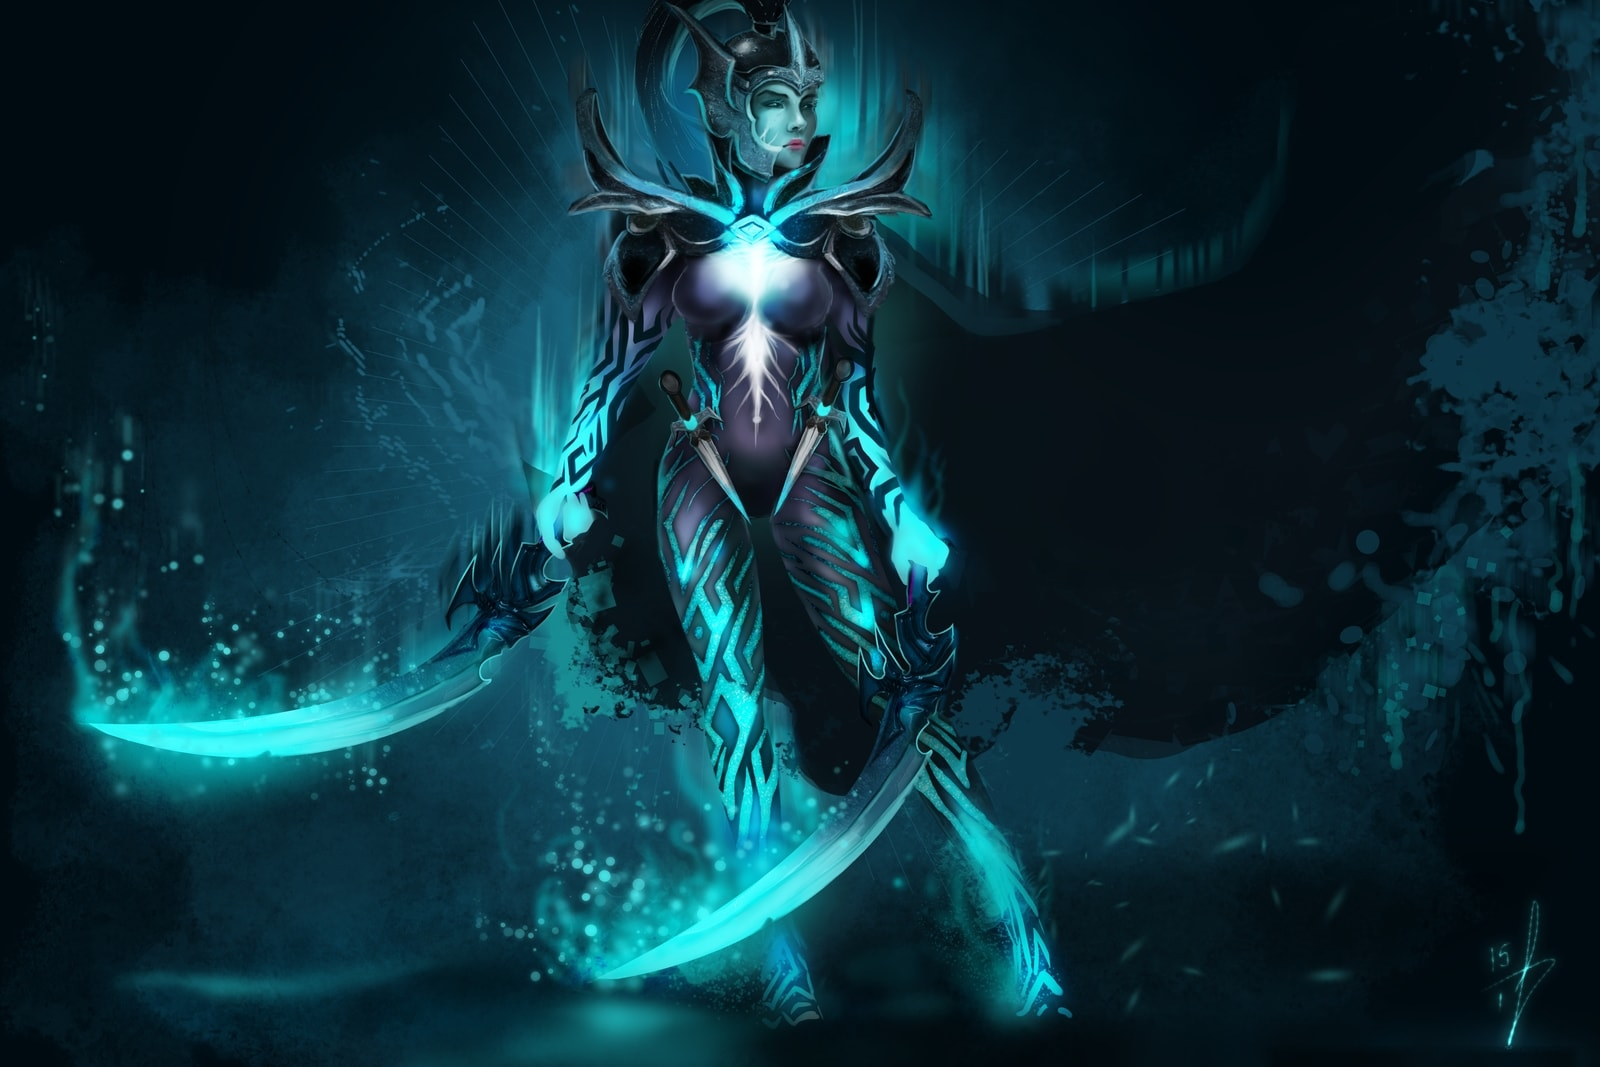 Dota2 : Phantom Assassin Backgrounds